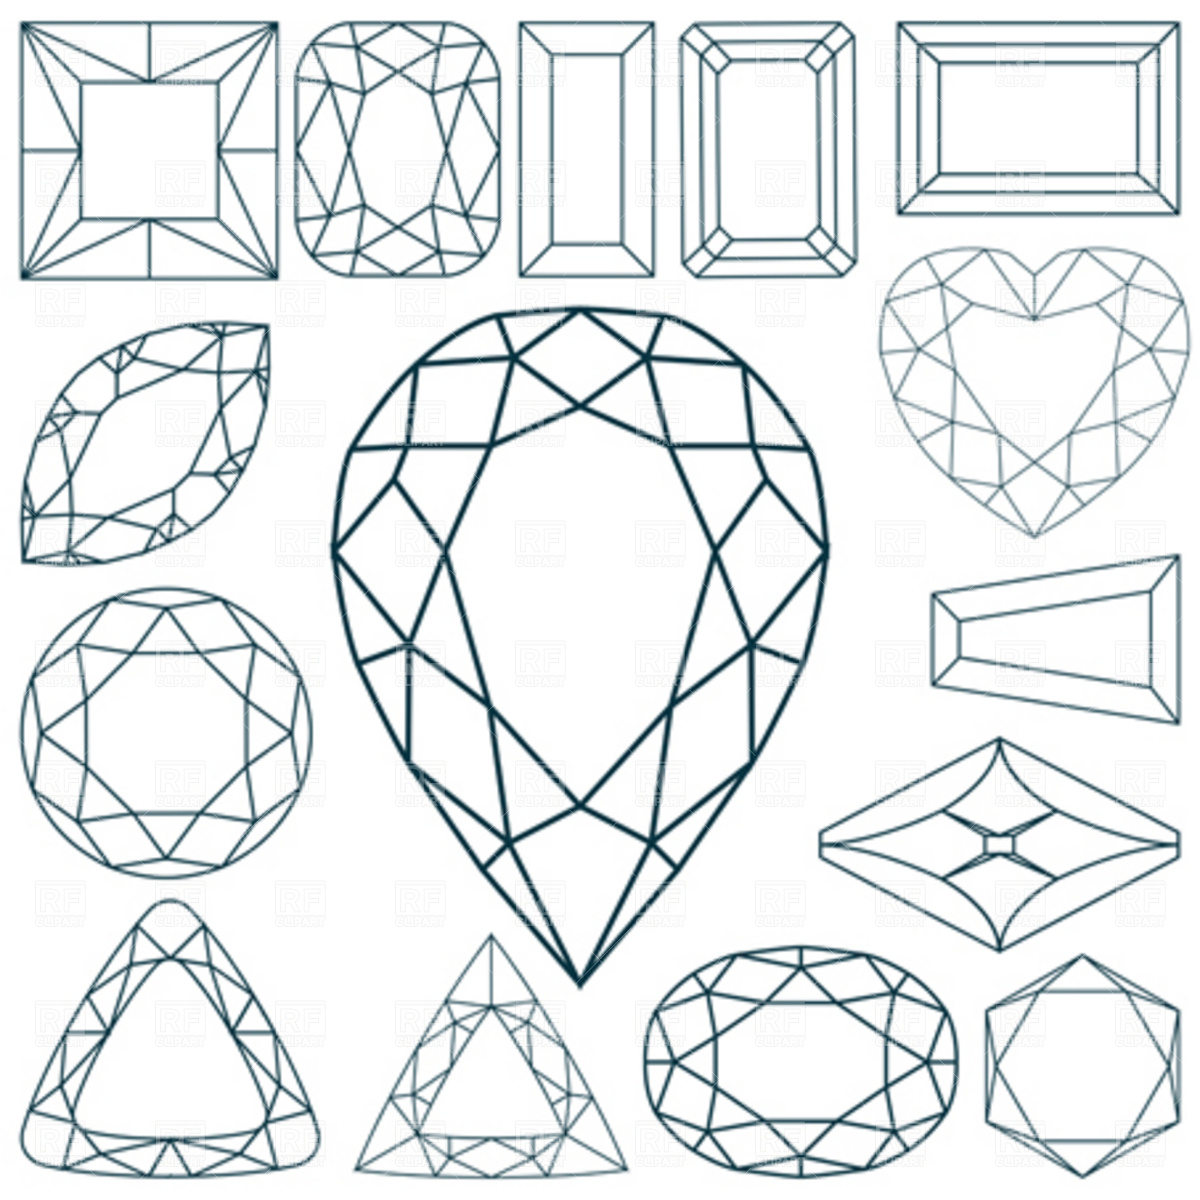 1200x1200 Diamond Shapes And Facet Styles Collection Vector Image Vector